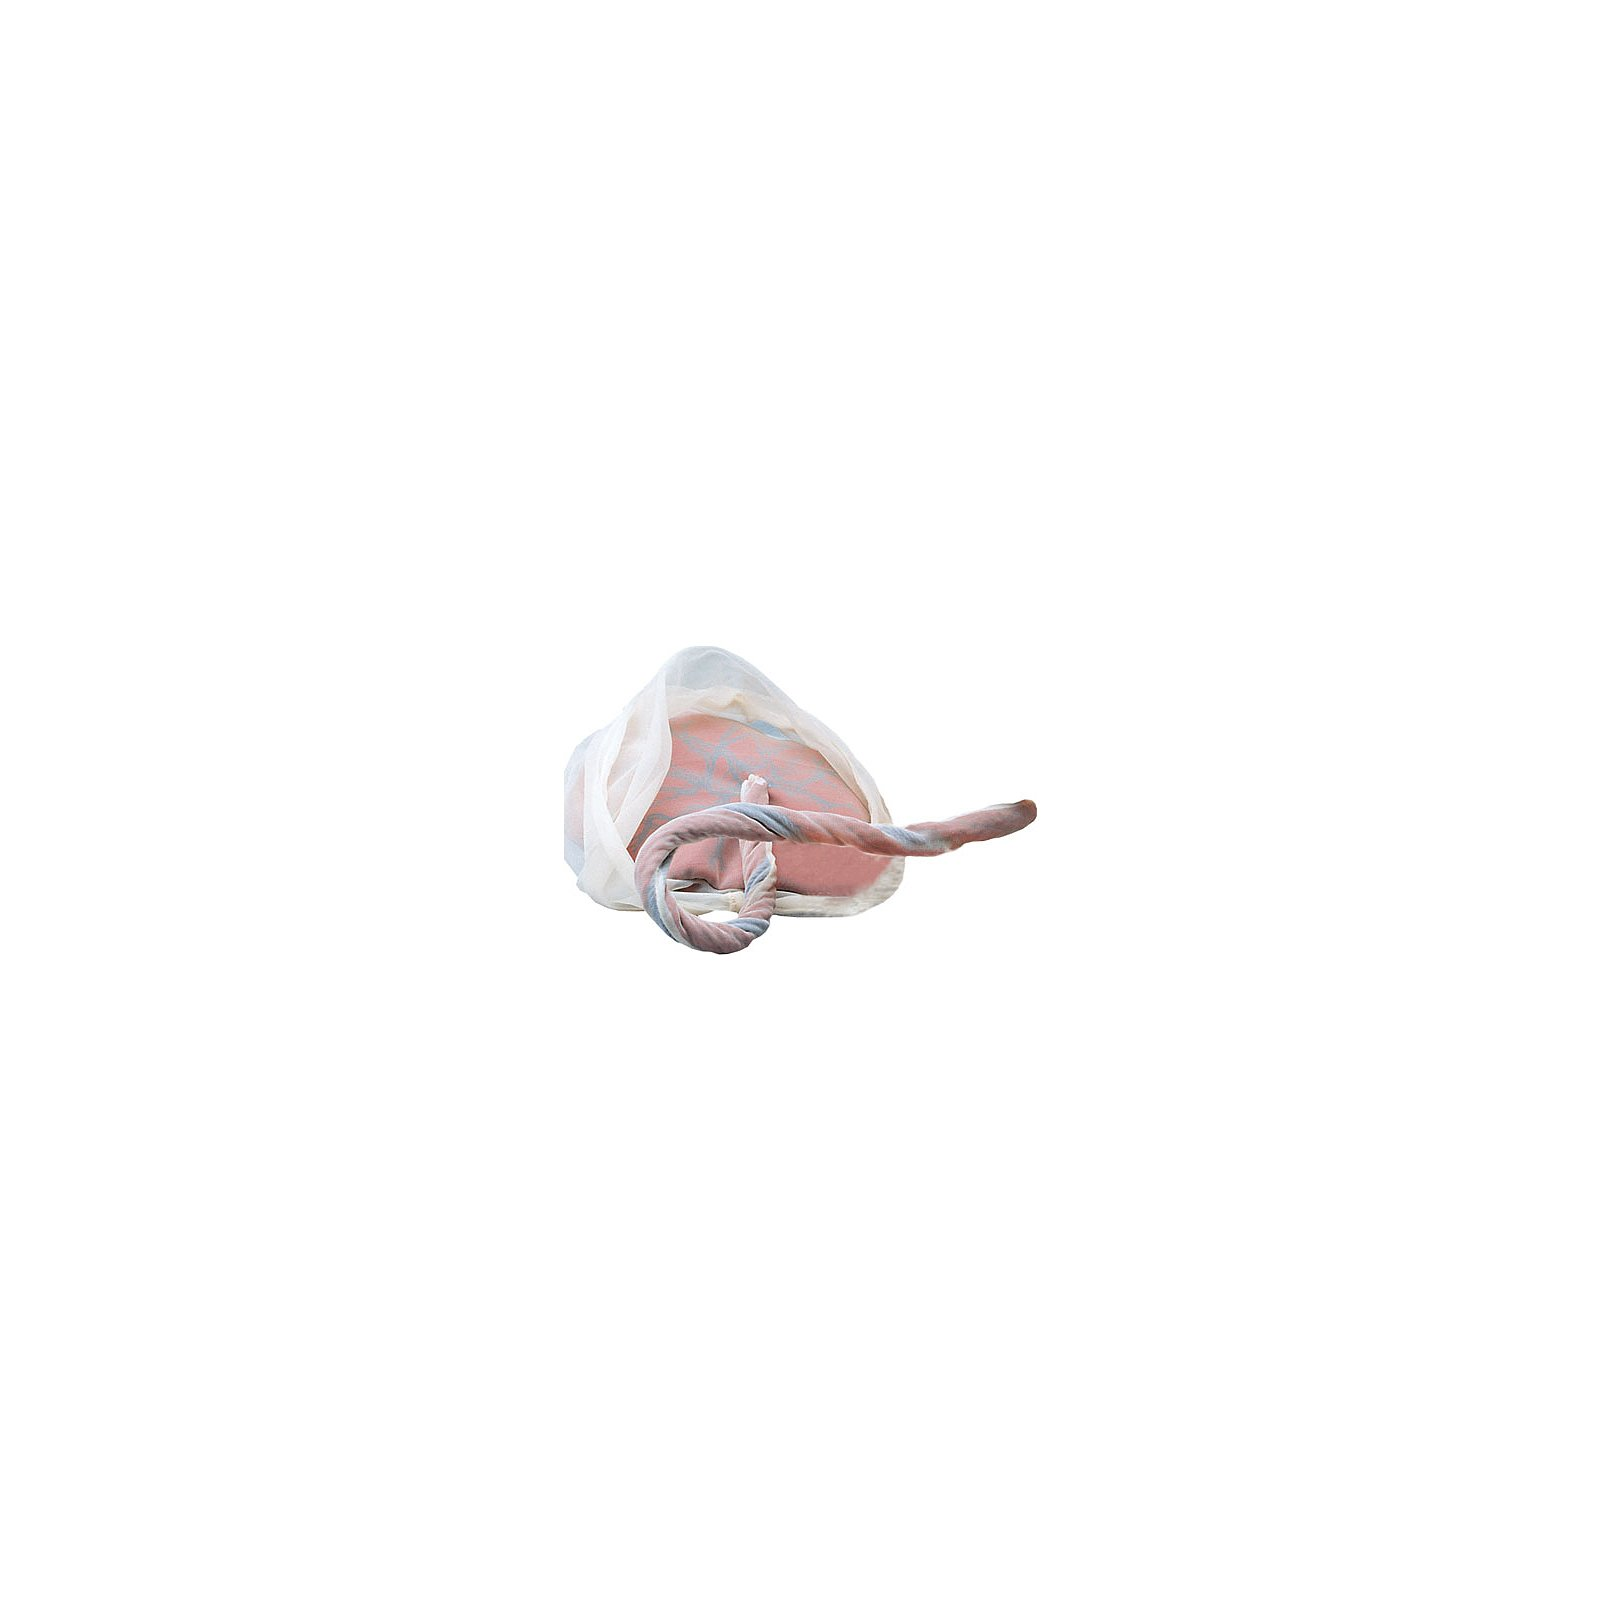 Model of Placenta & Umbilical Cord WRS 79807 R10071 W43039 ...